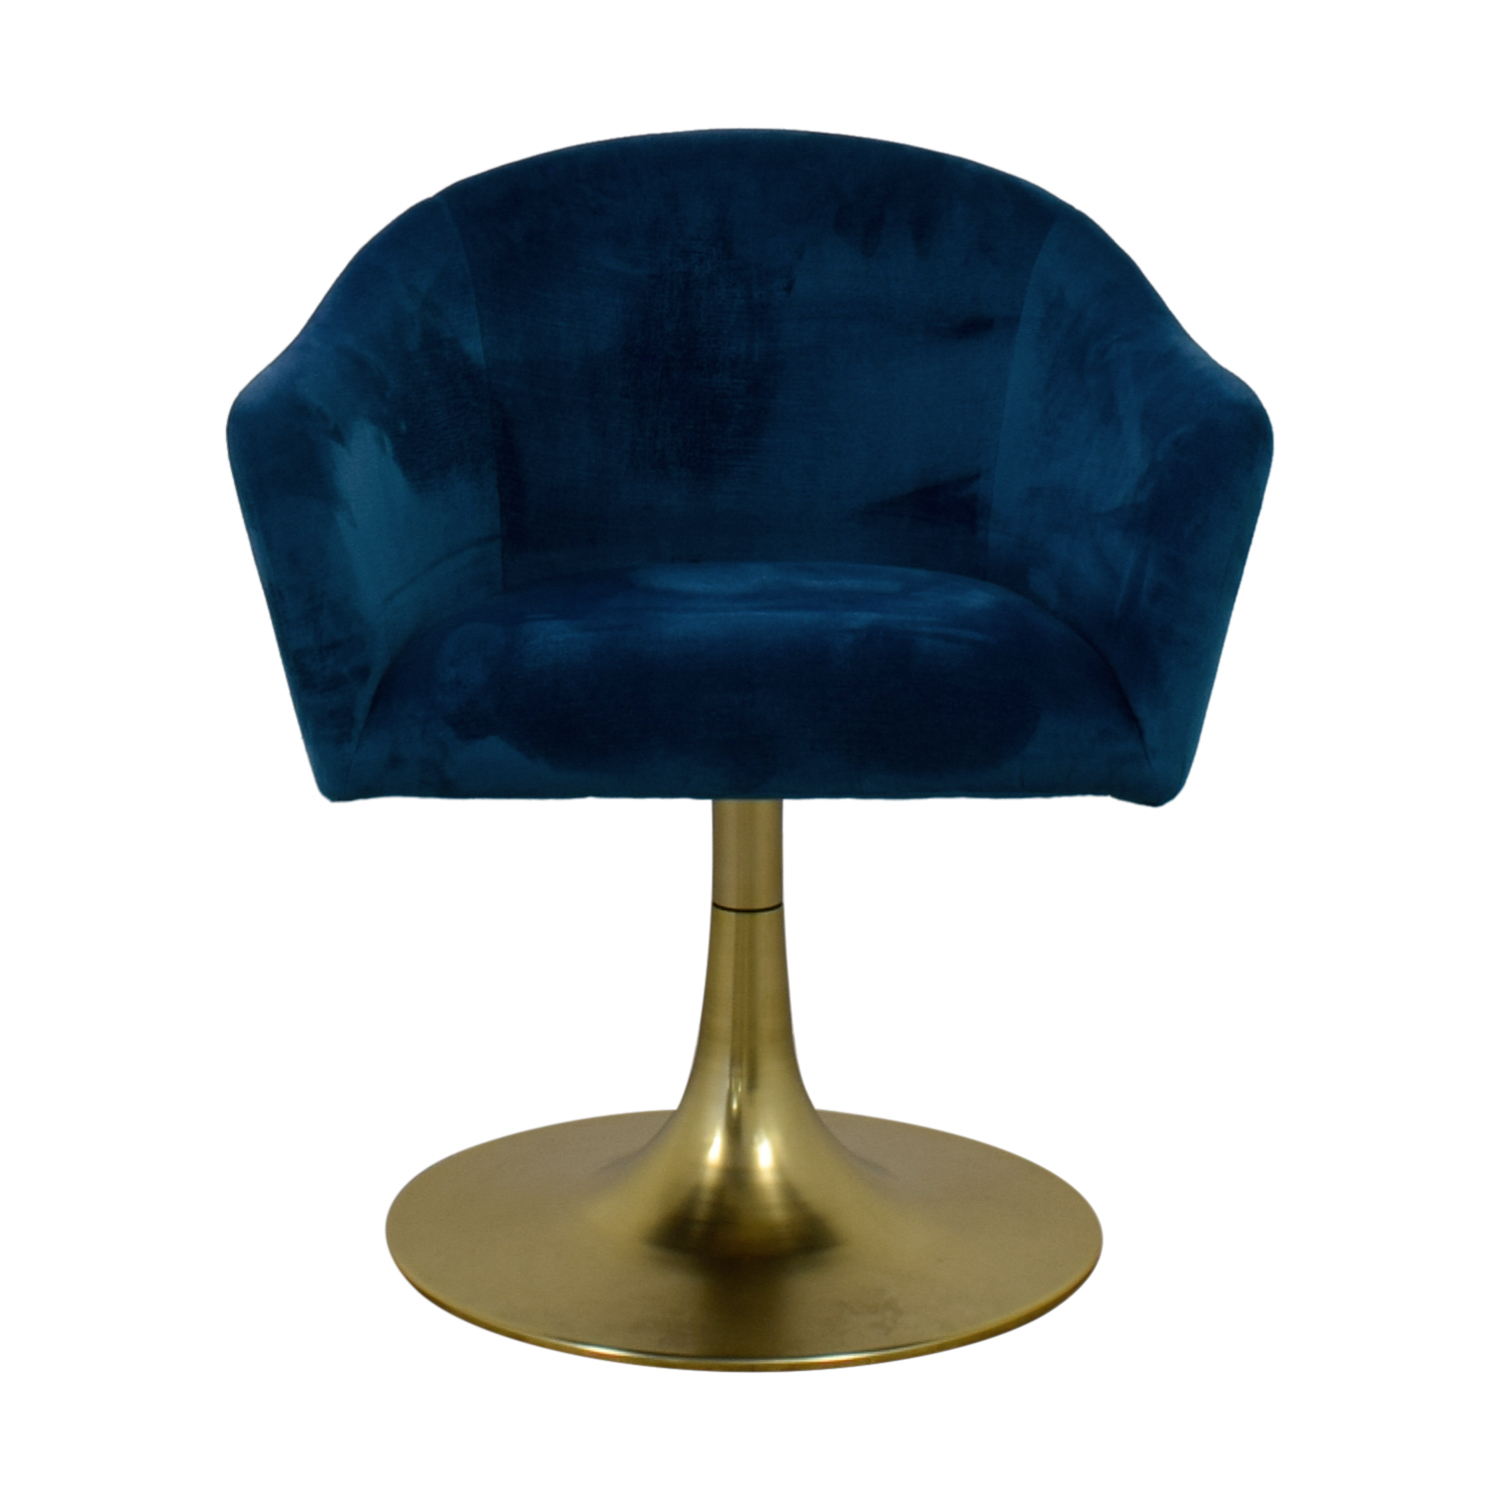 56% OFF   West Elm West Elm Bond Blue Velvet Swivel Chair / Chairs